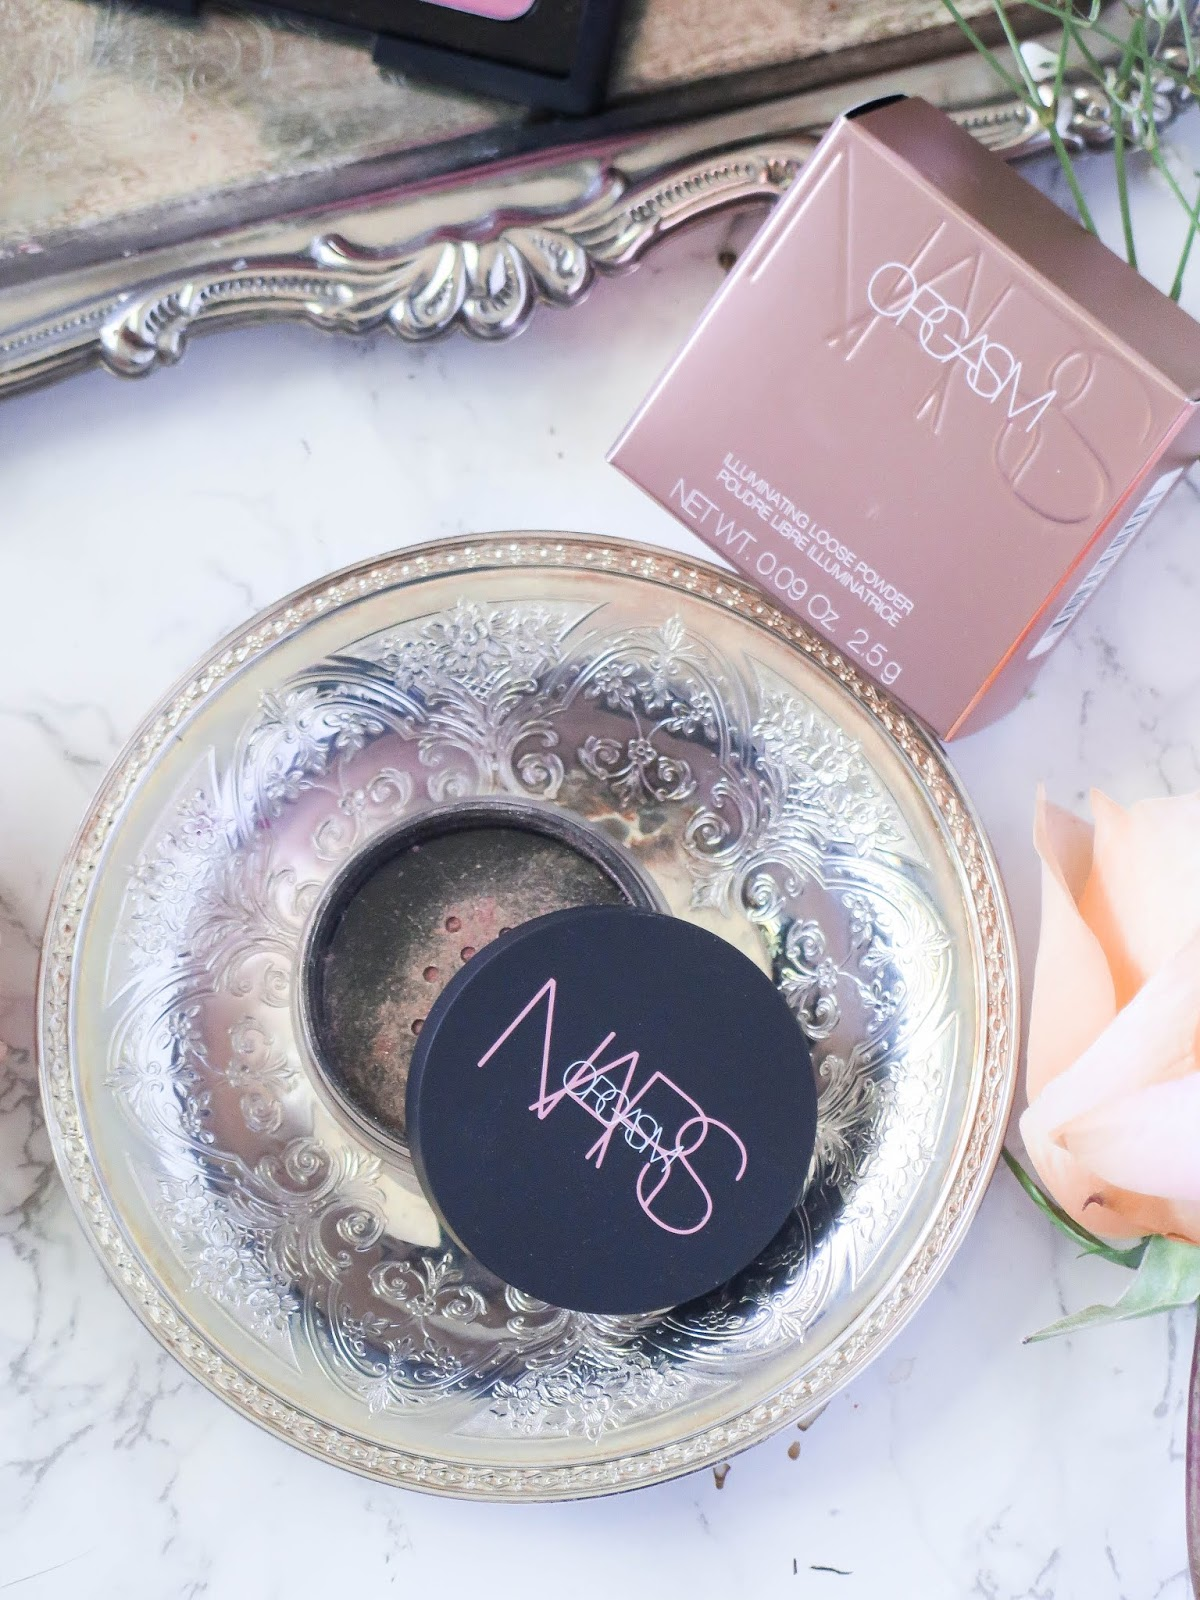 Next Level O   NARS Orgasm Revamp & Extension   Illuminating Powder & Afterglow Lip Balm   Review & Swatches   labellesirene.ca